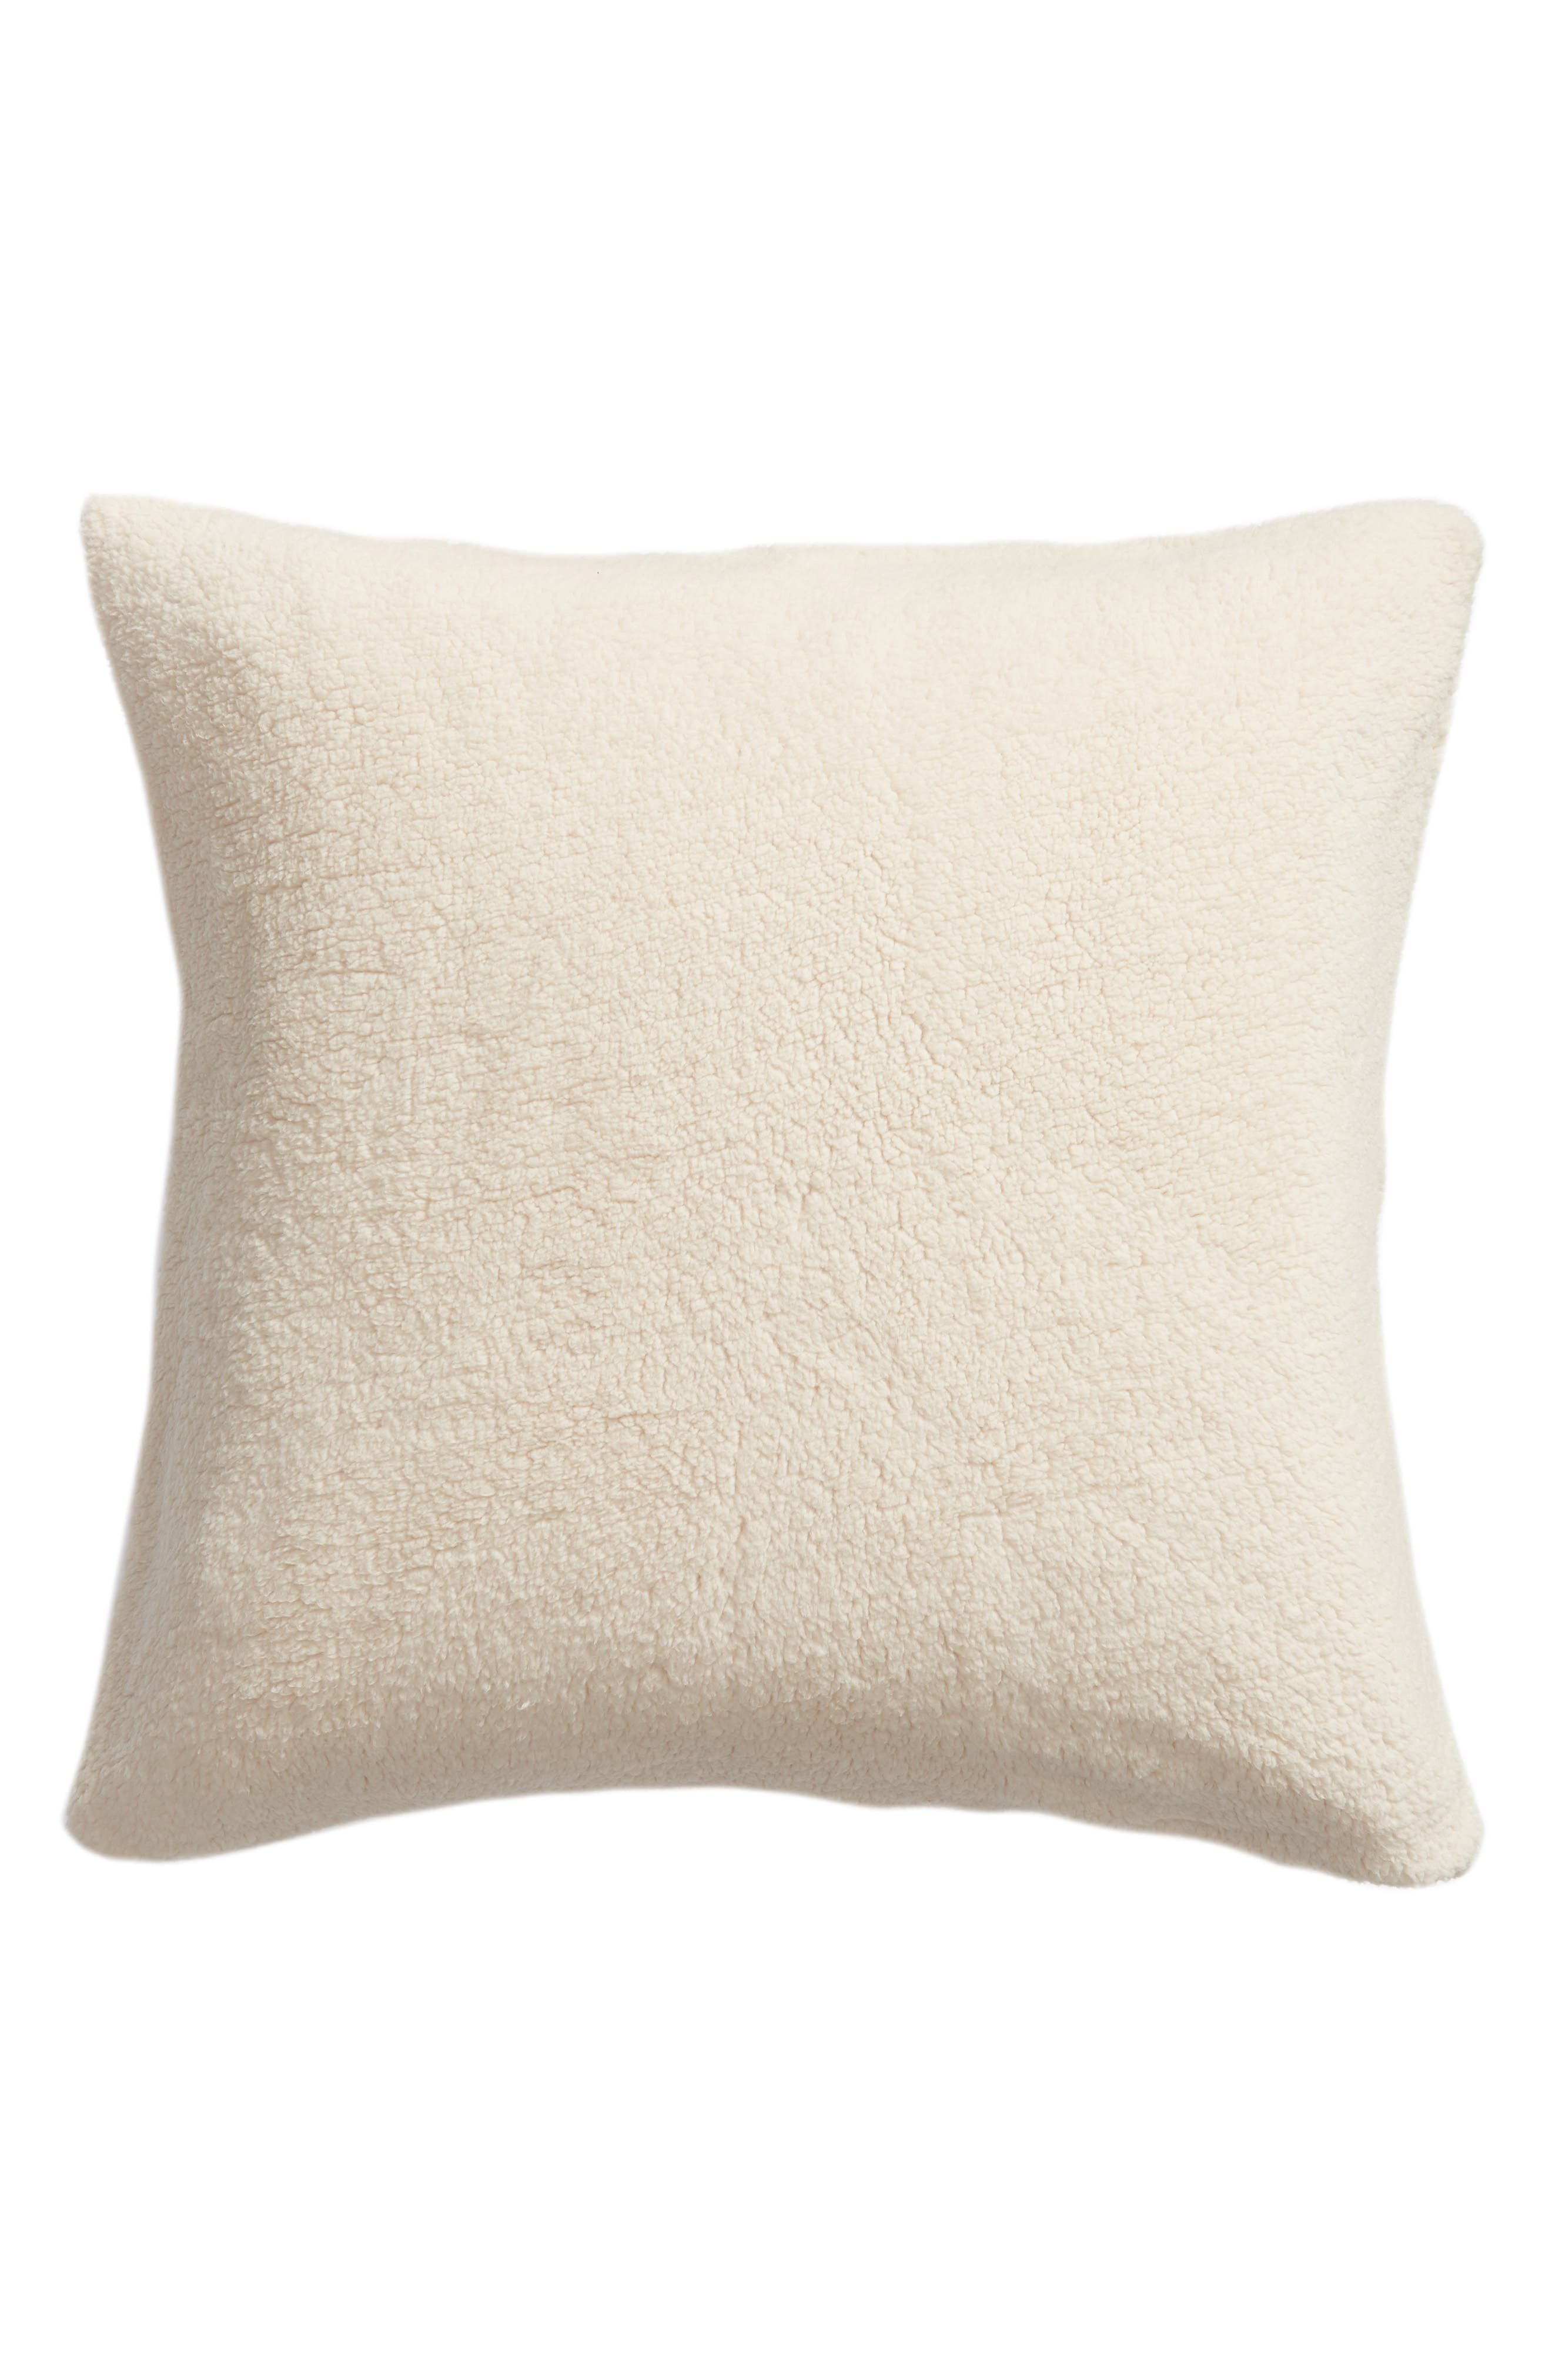 NORDSTROM AT HOME,                             Faux Shearling Accent Pillow,                             Main thumbnail 1, color,                             BEIGE OATMEAL